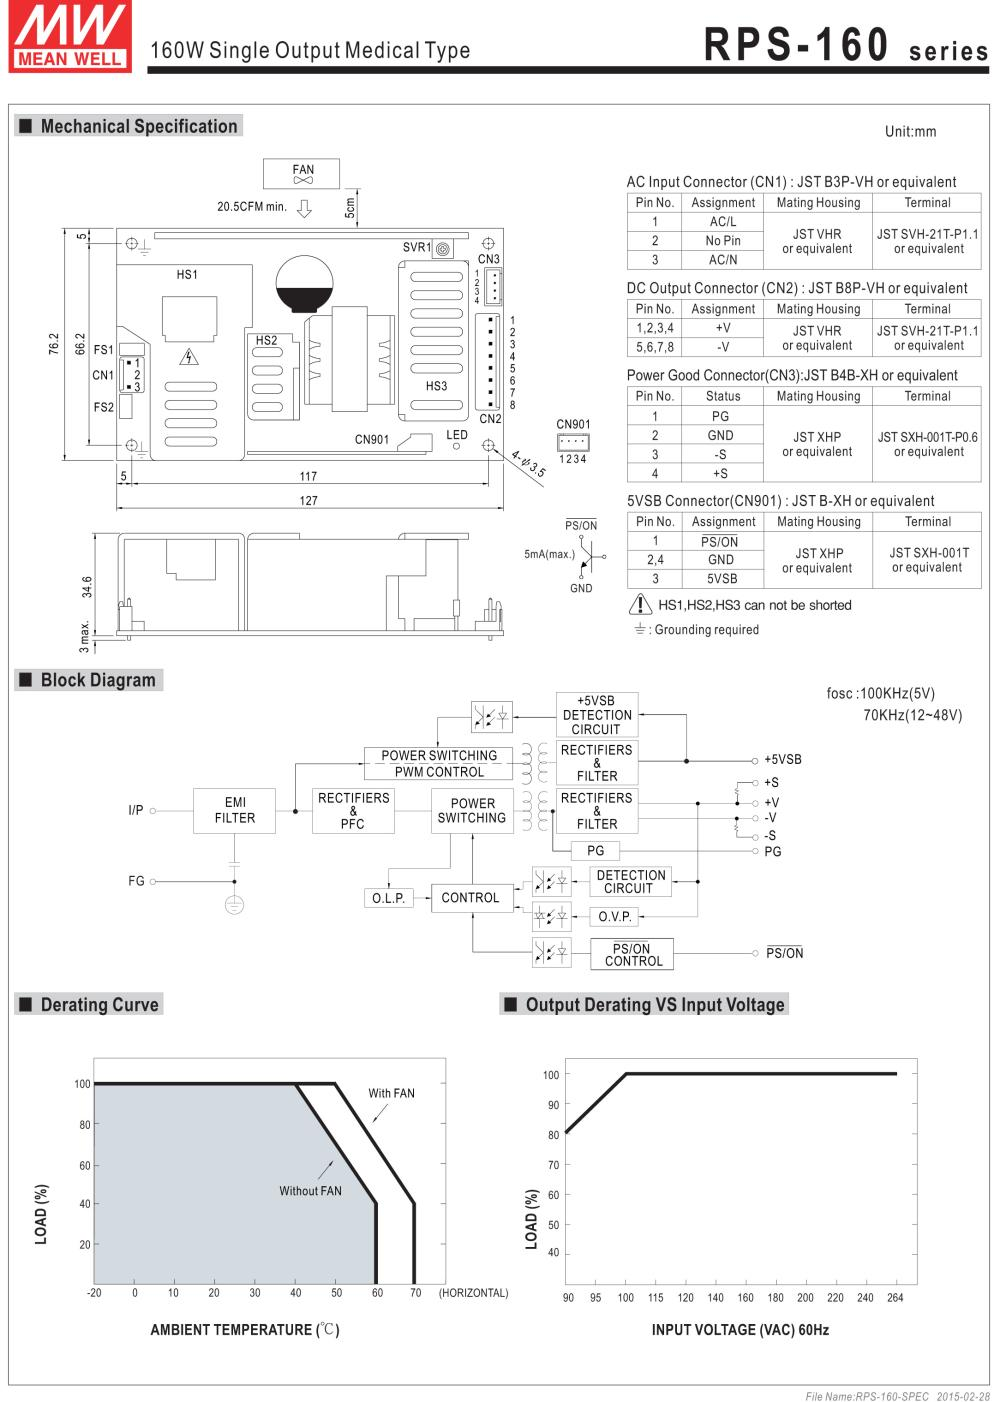 Vente Chaude Mean Well Rpsg 160 24 V 65a Meanwell The Fu29 Pushpull Circuit Amplifiercircuit Diagram Aeproductgetsubject